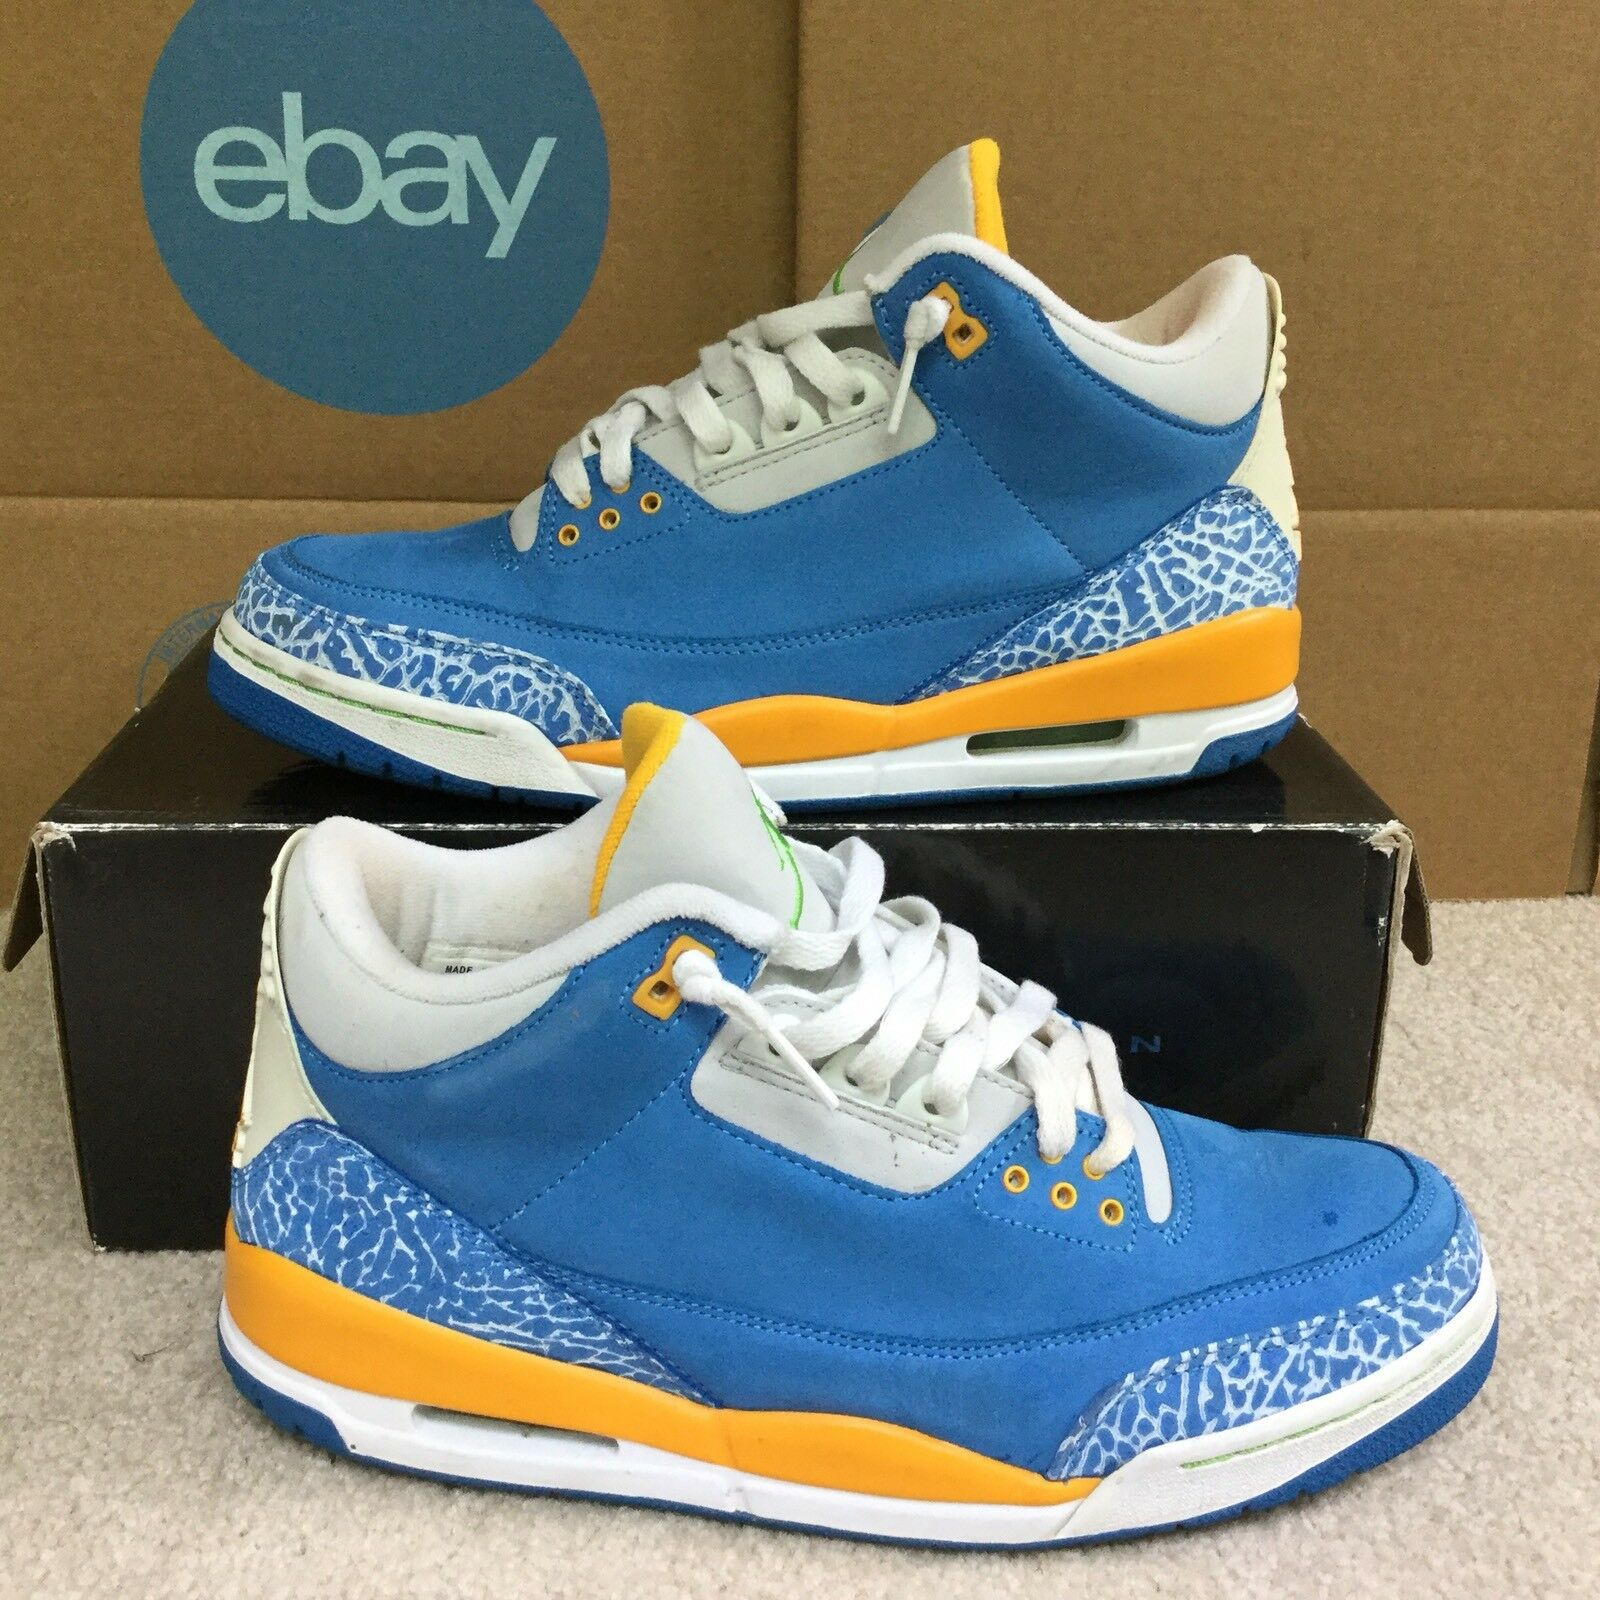 """VNDS Air Jordan 3 III LS """"Do The Right Thing"""" Blue Gold Green Size 10 315297 471"""